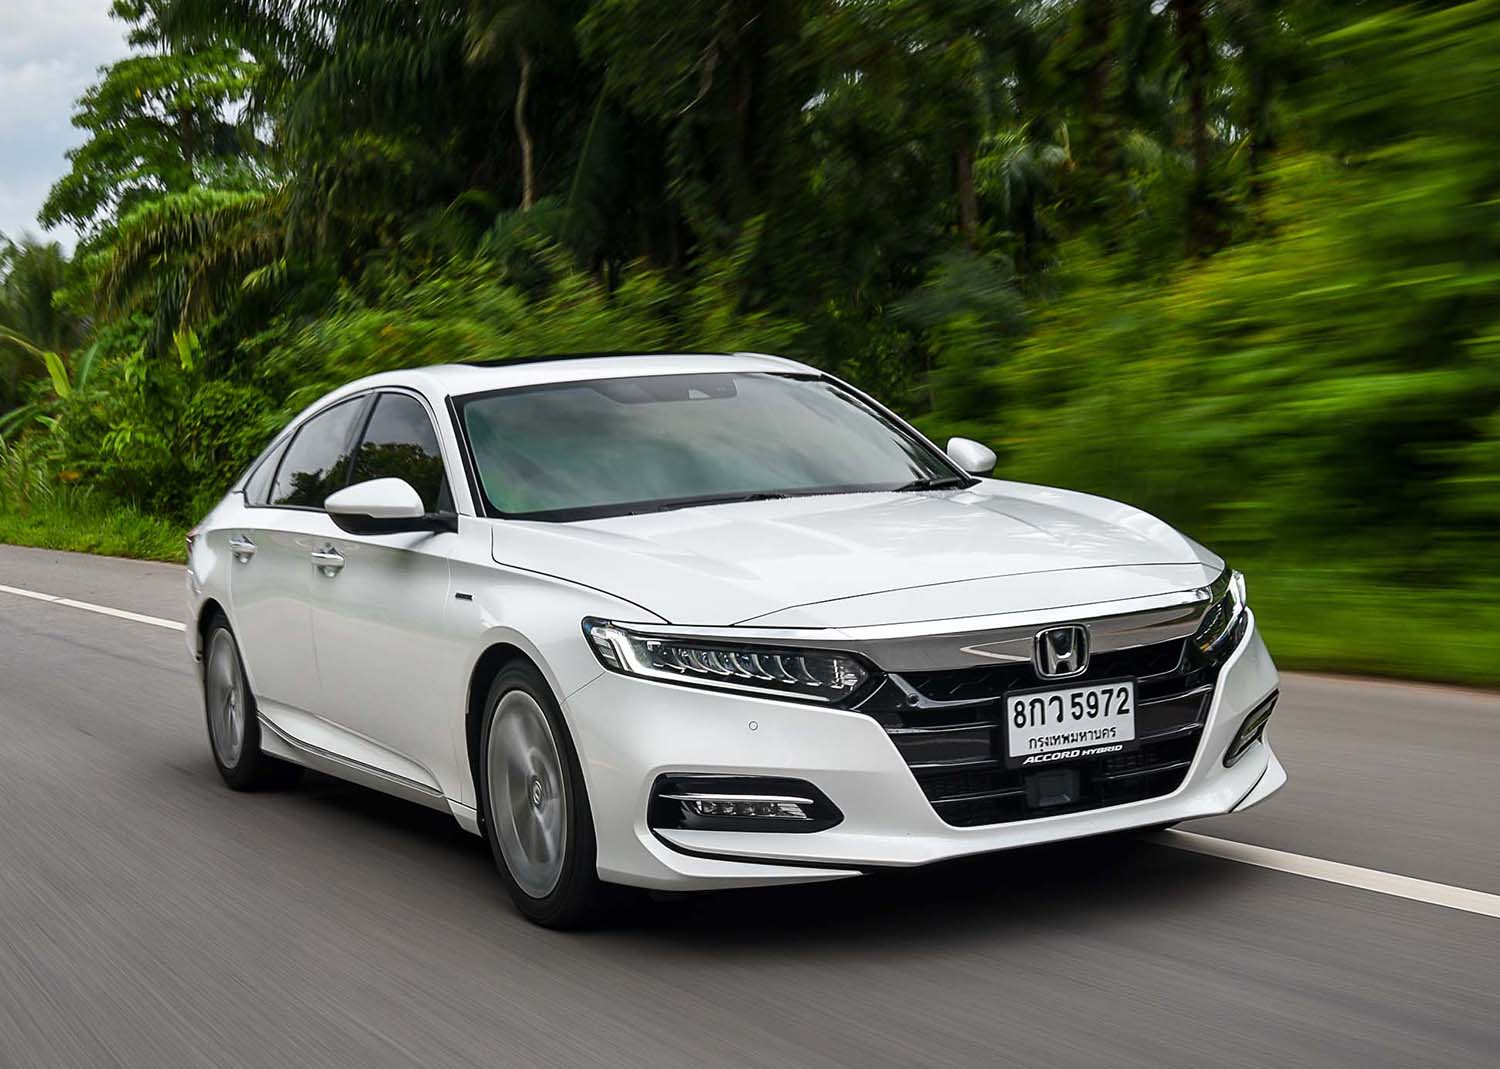 Honda Accord Official Site >> Honda Accord Hybrid Tech 2019 Review